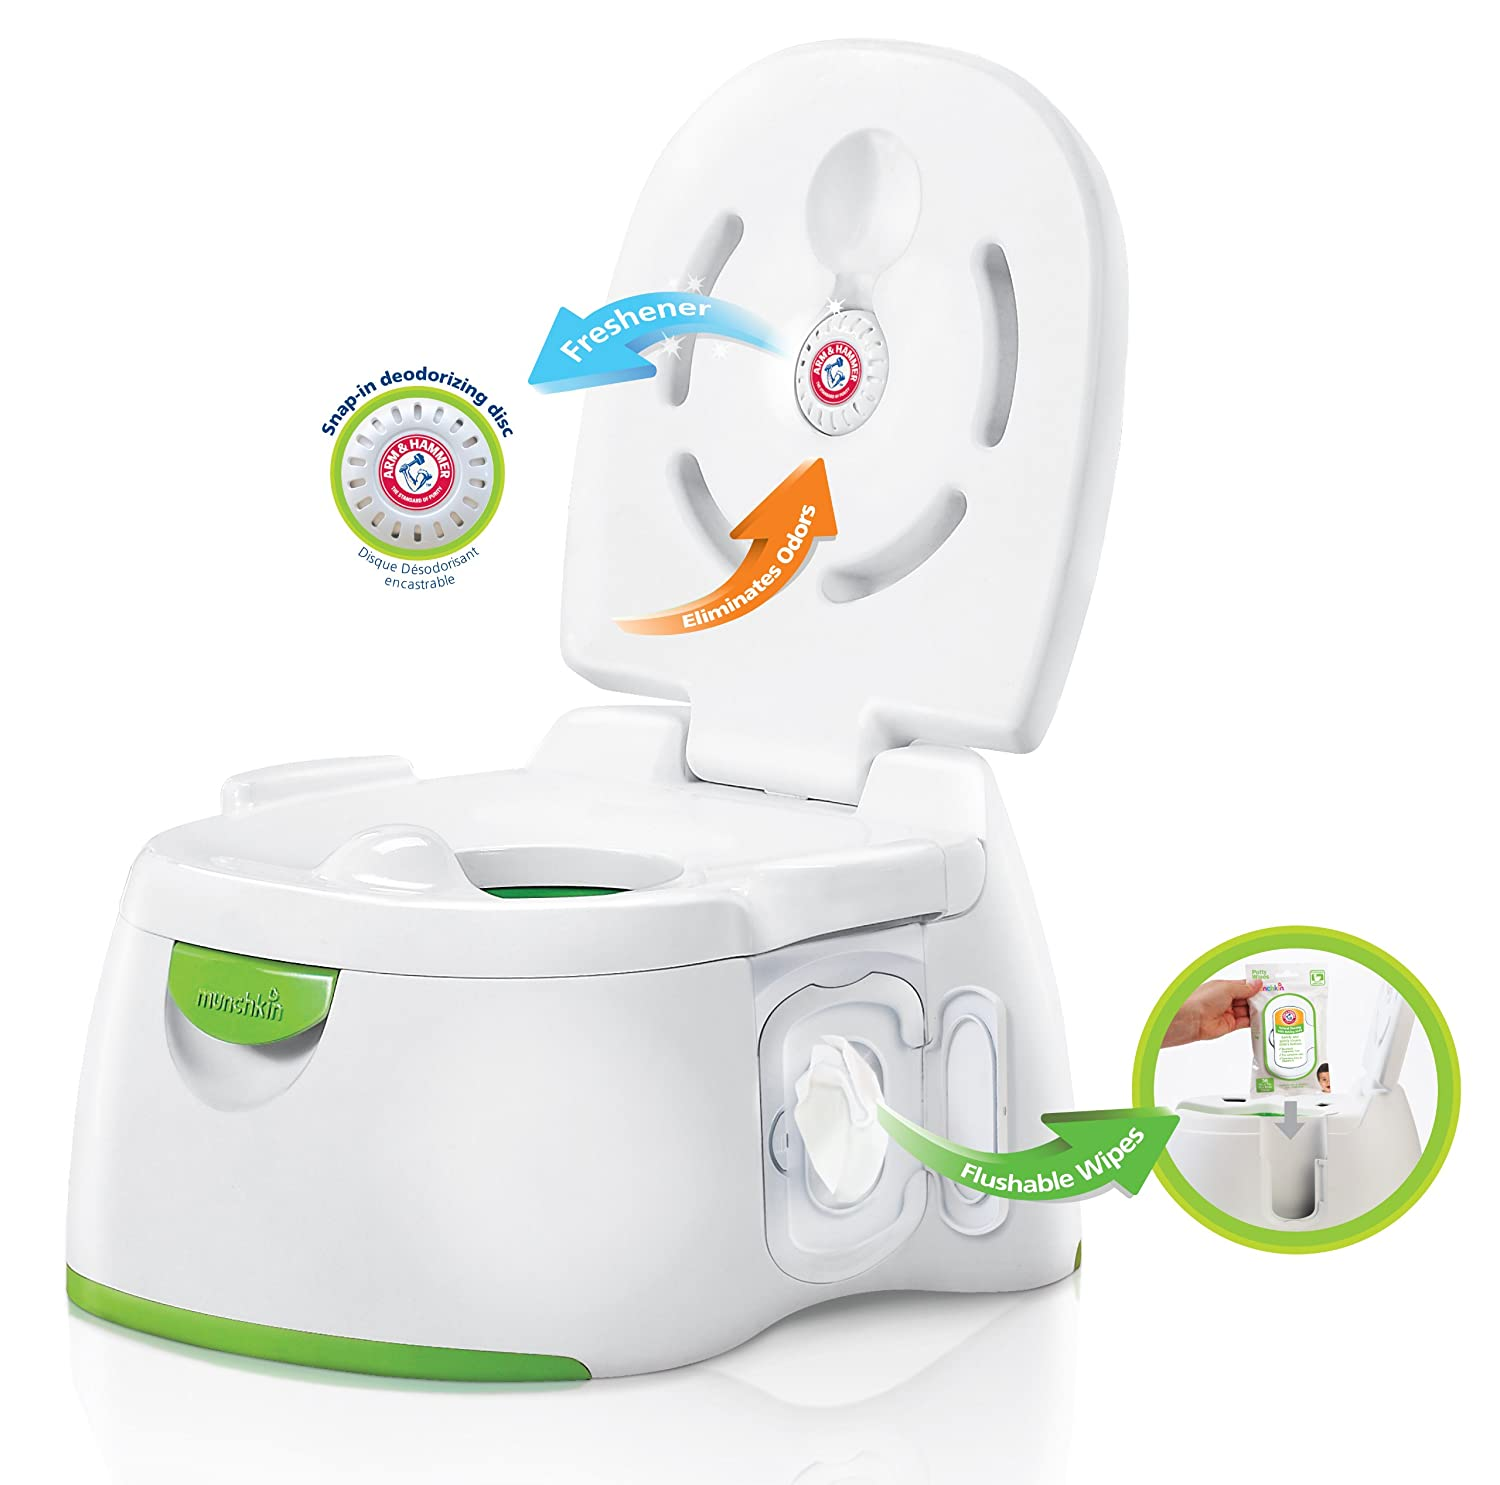 best potty chair for boys folding table with storage inside buying guide 15 trainers it 39s baby time